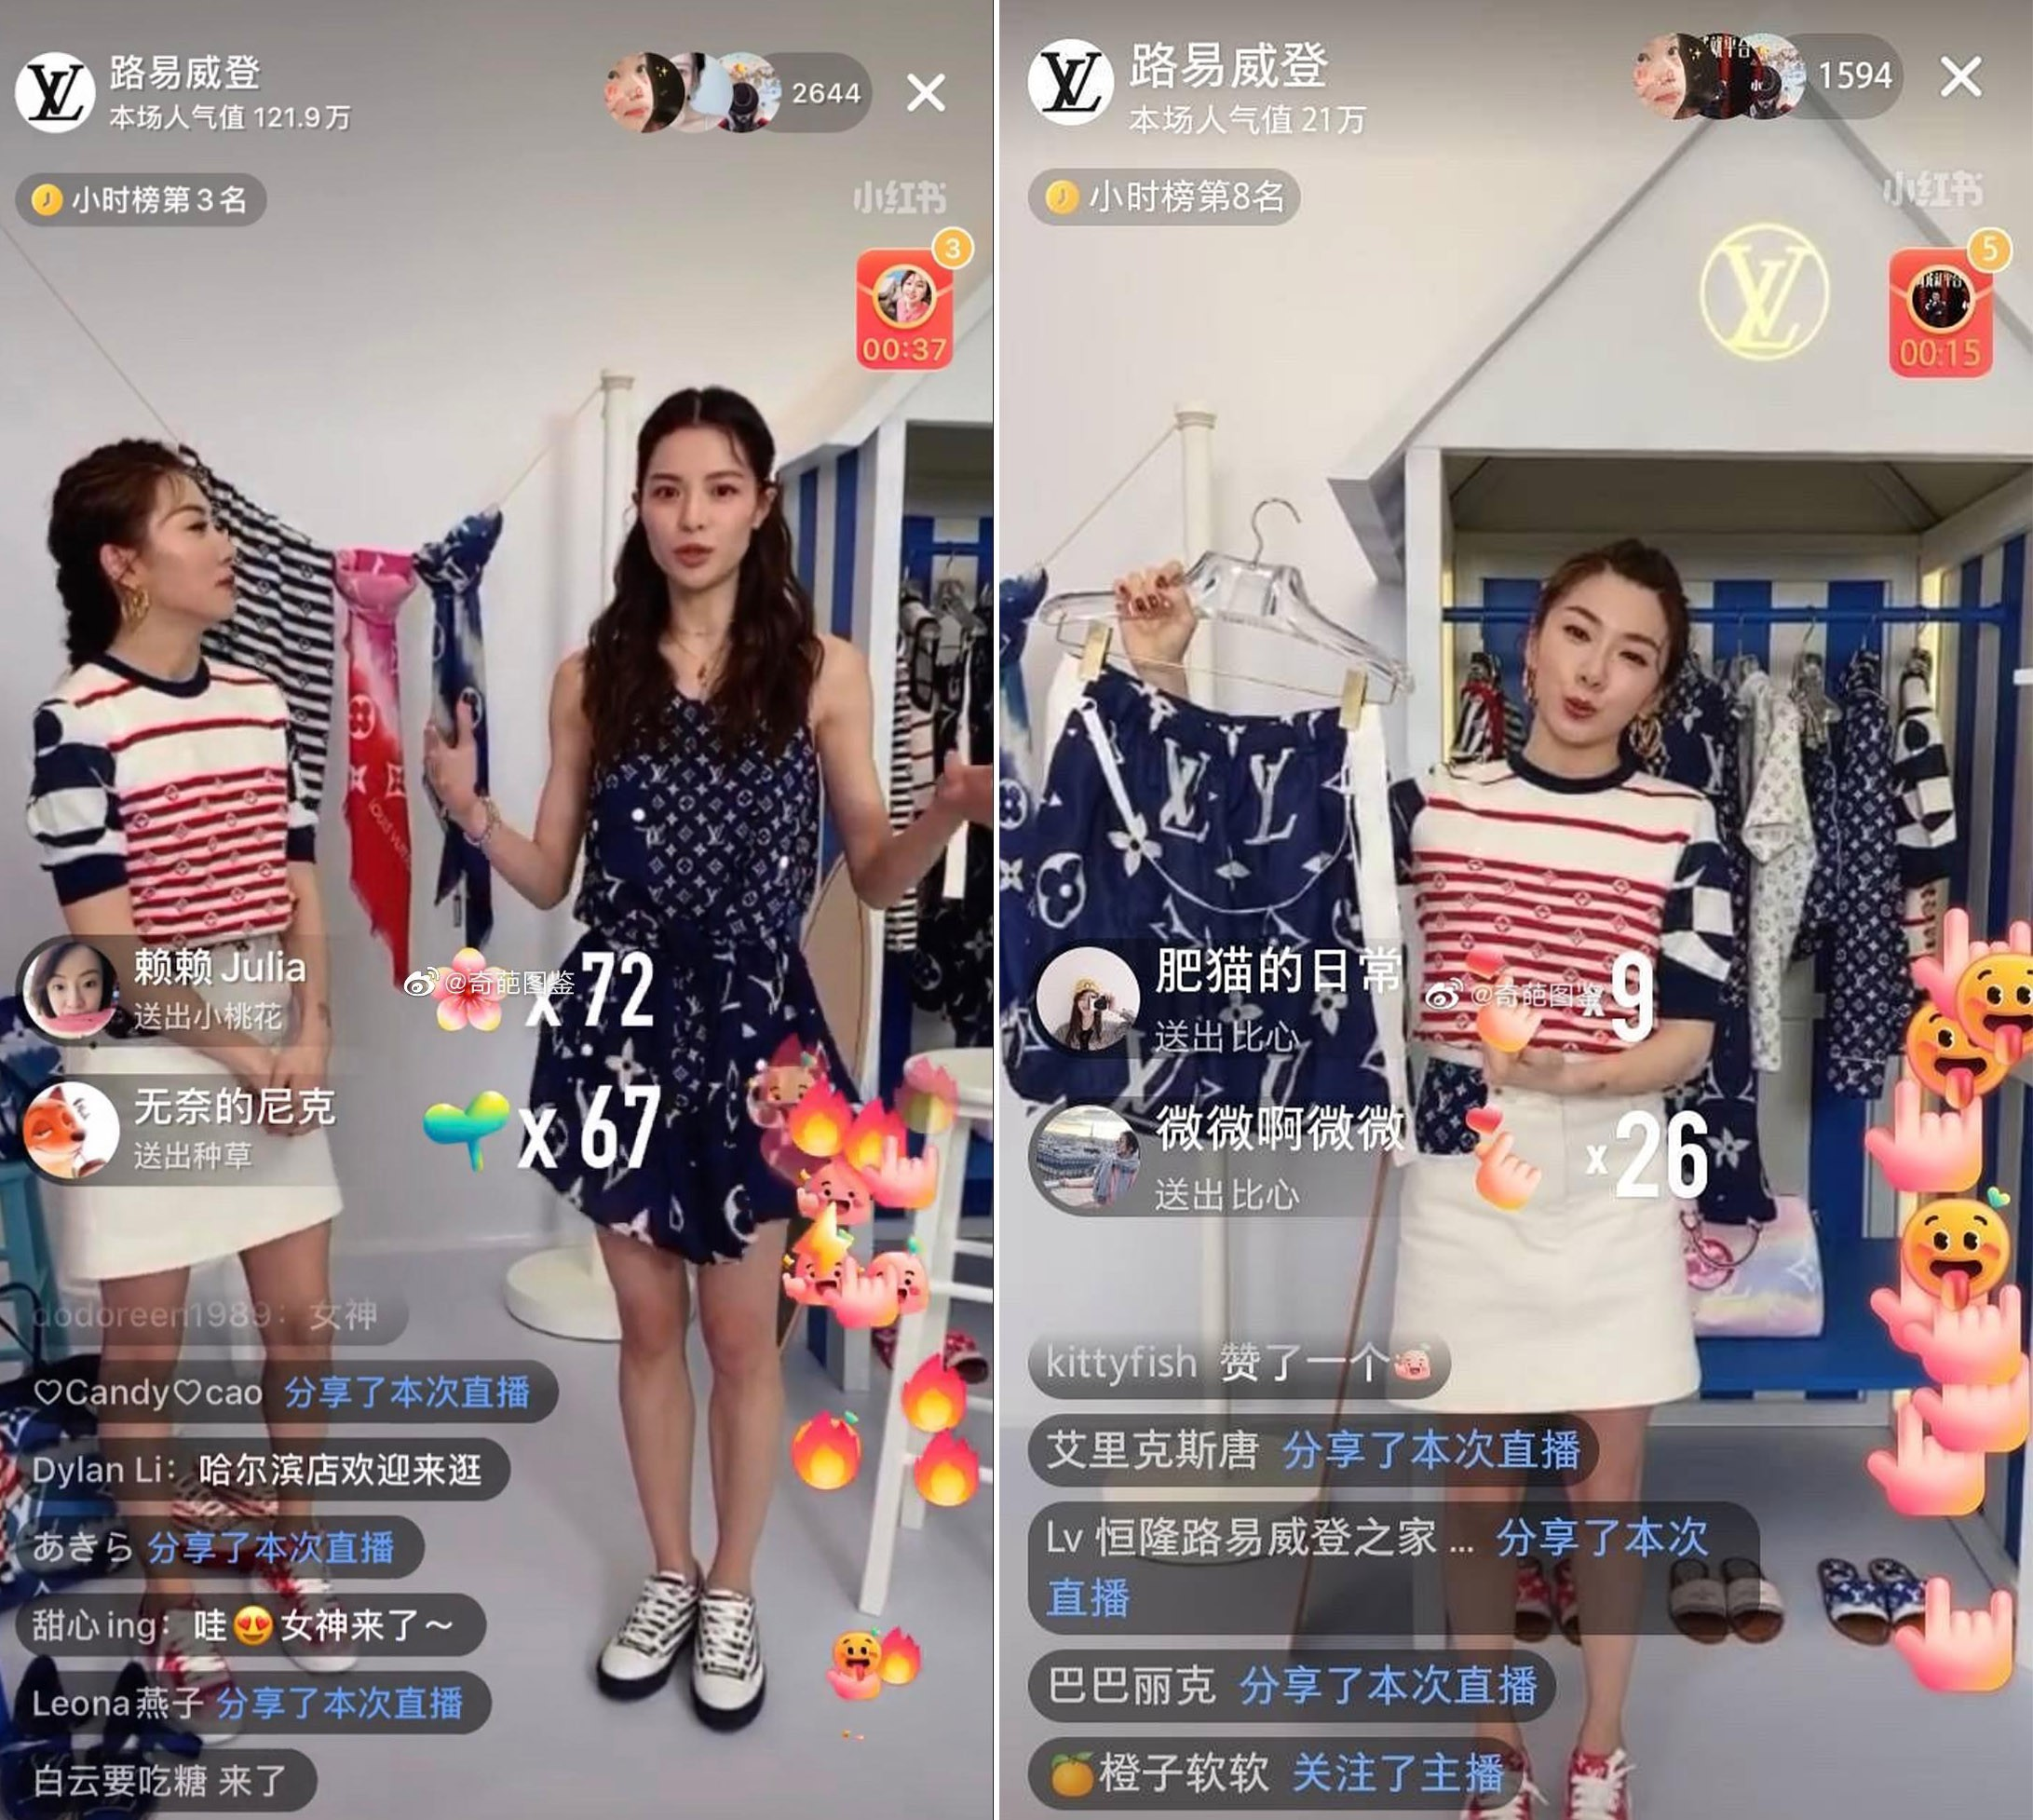 Louis Vuitton is one of the first luxury brands to promote its products via live streaming in China.